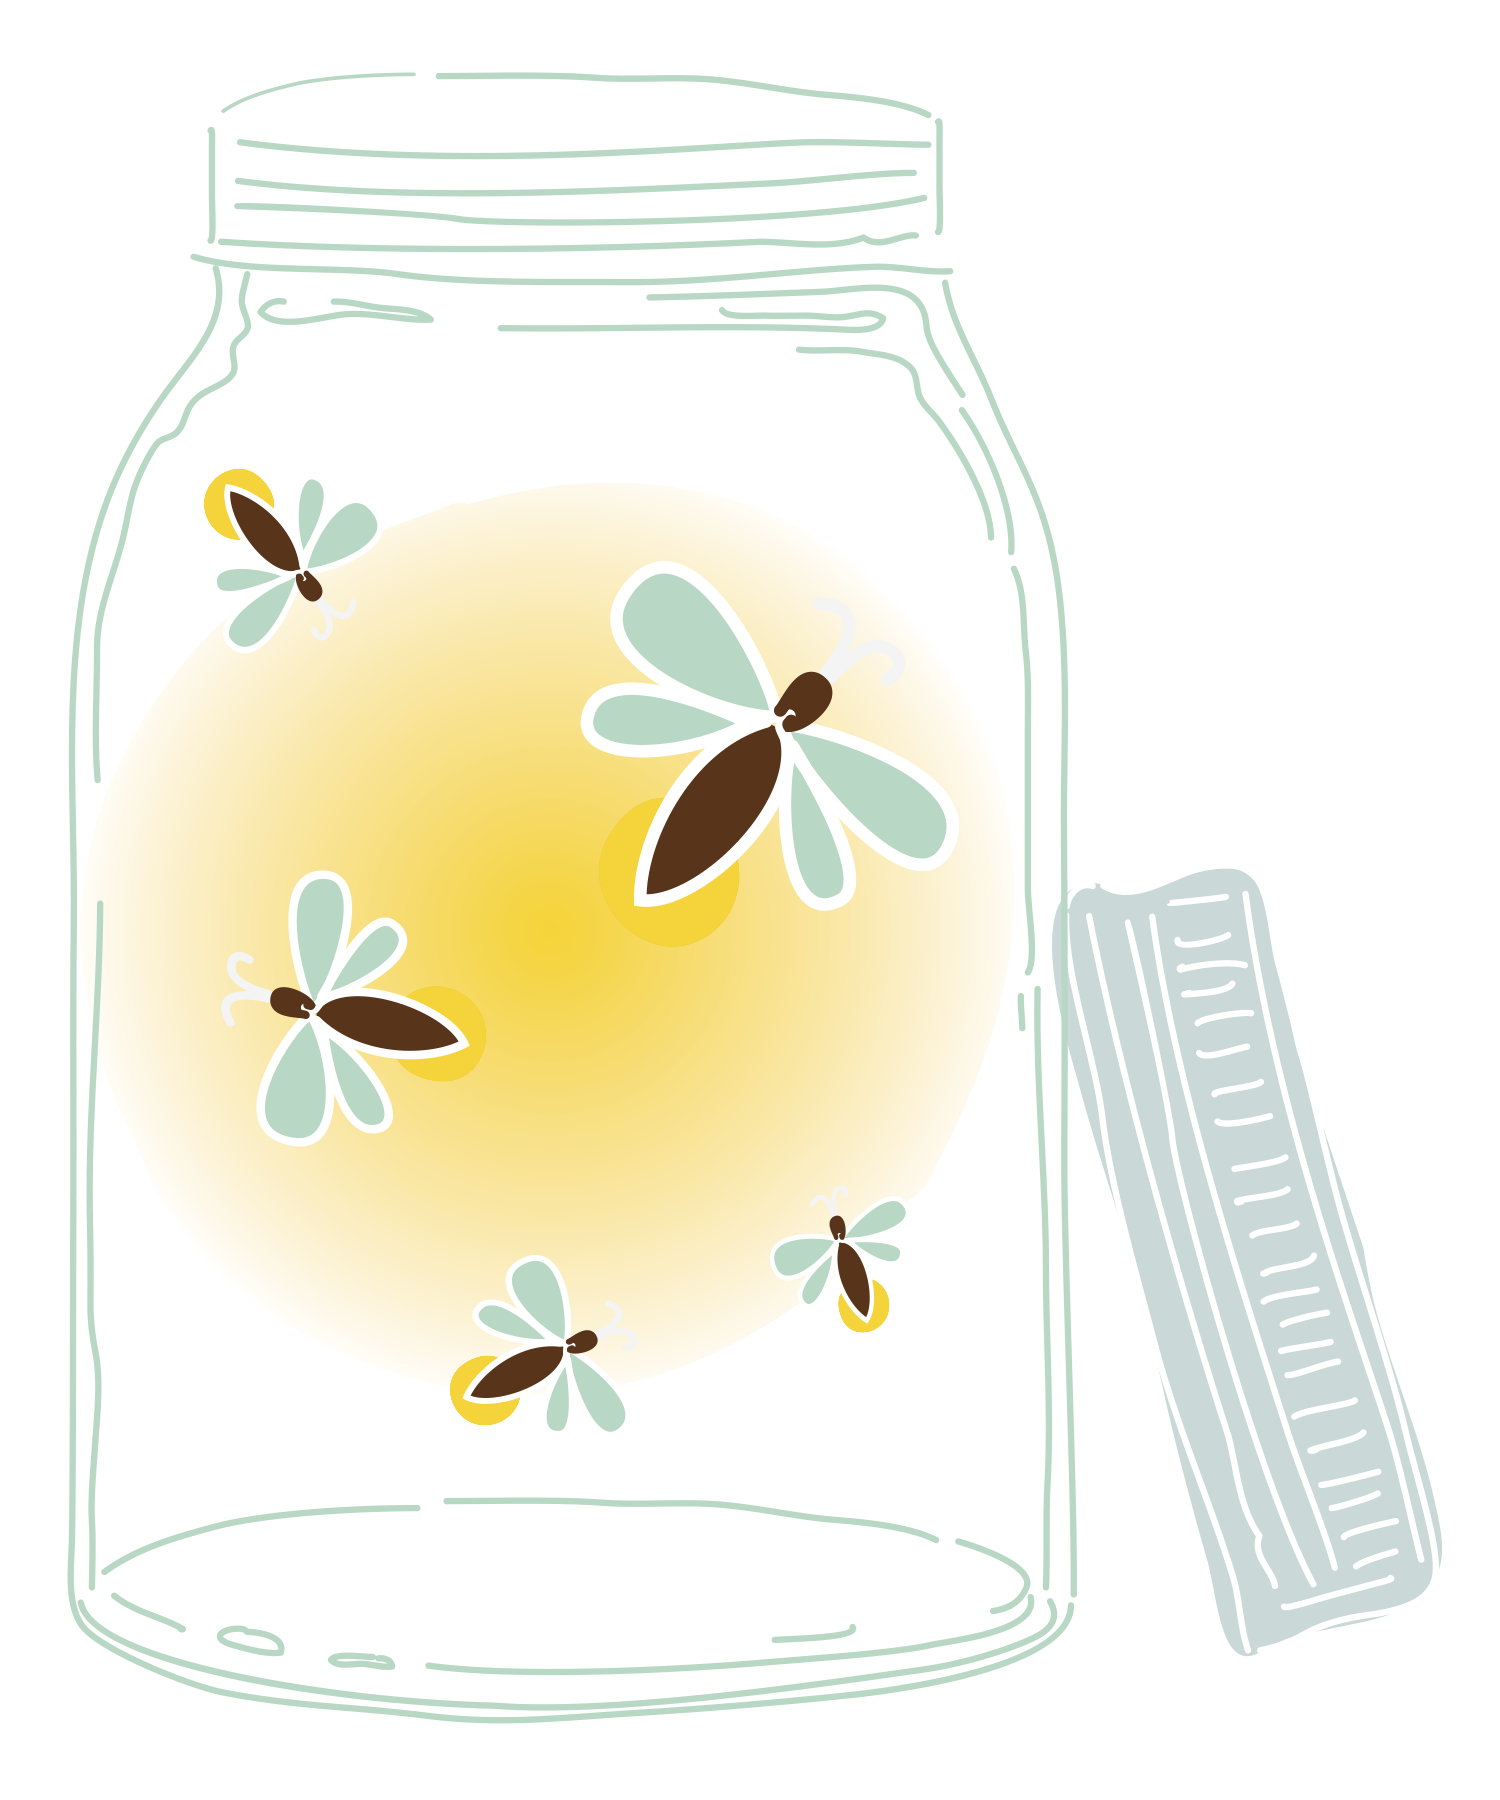 Transparent jar firefly. Graphic freeuse library